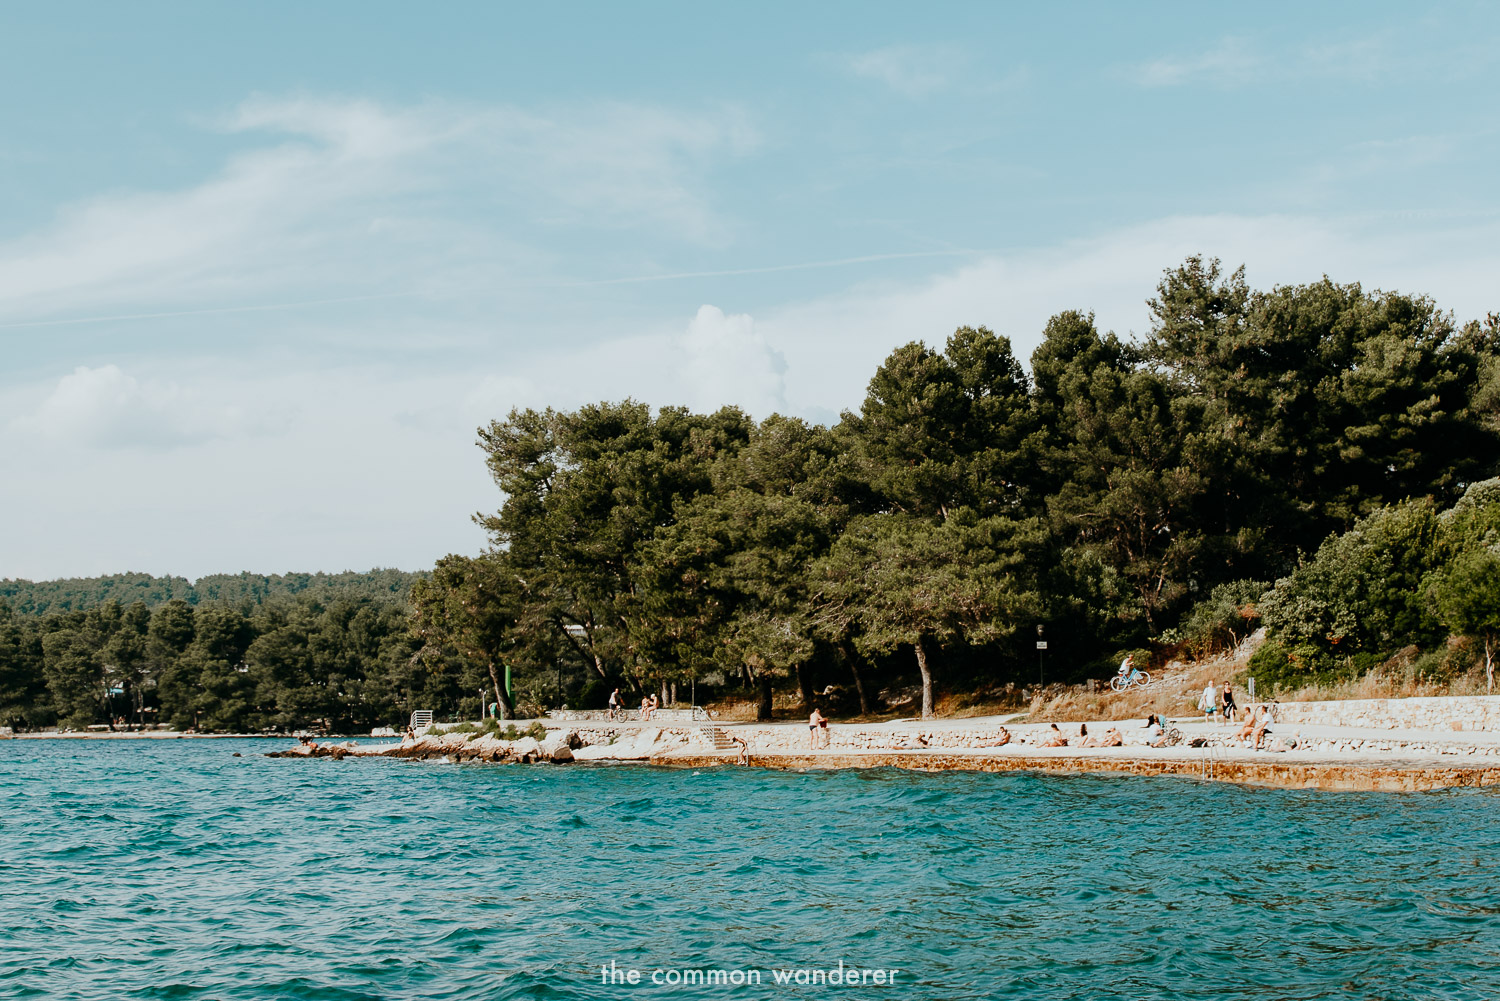 Swimming on the beautiful beaches is one of the best things to do in Stari Grad